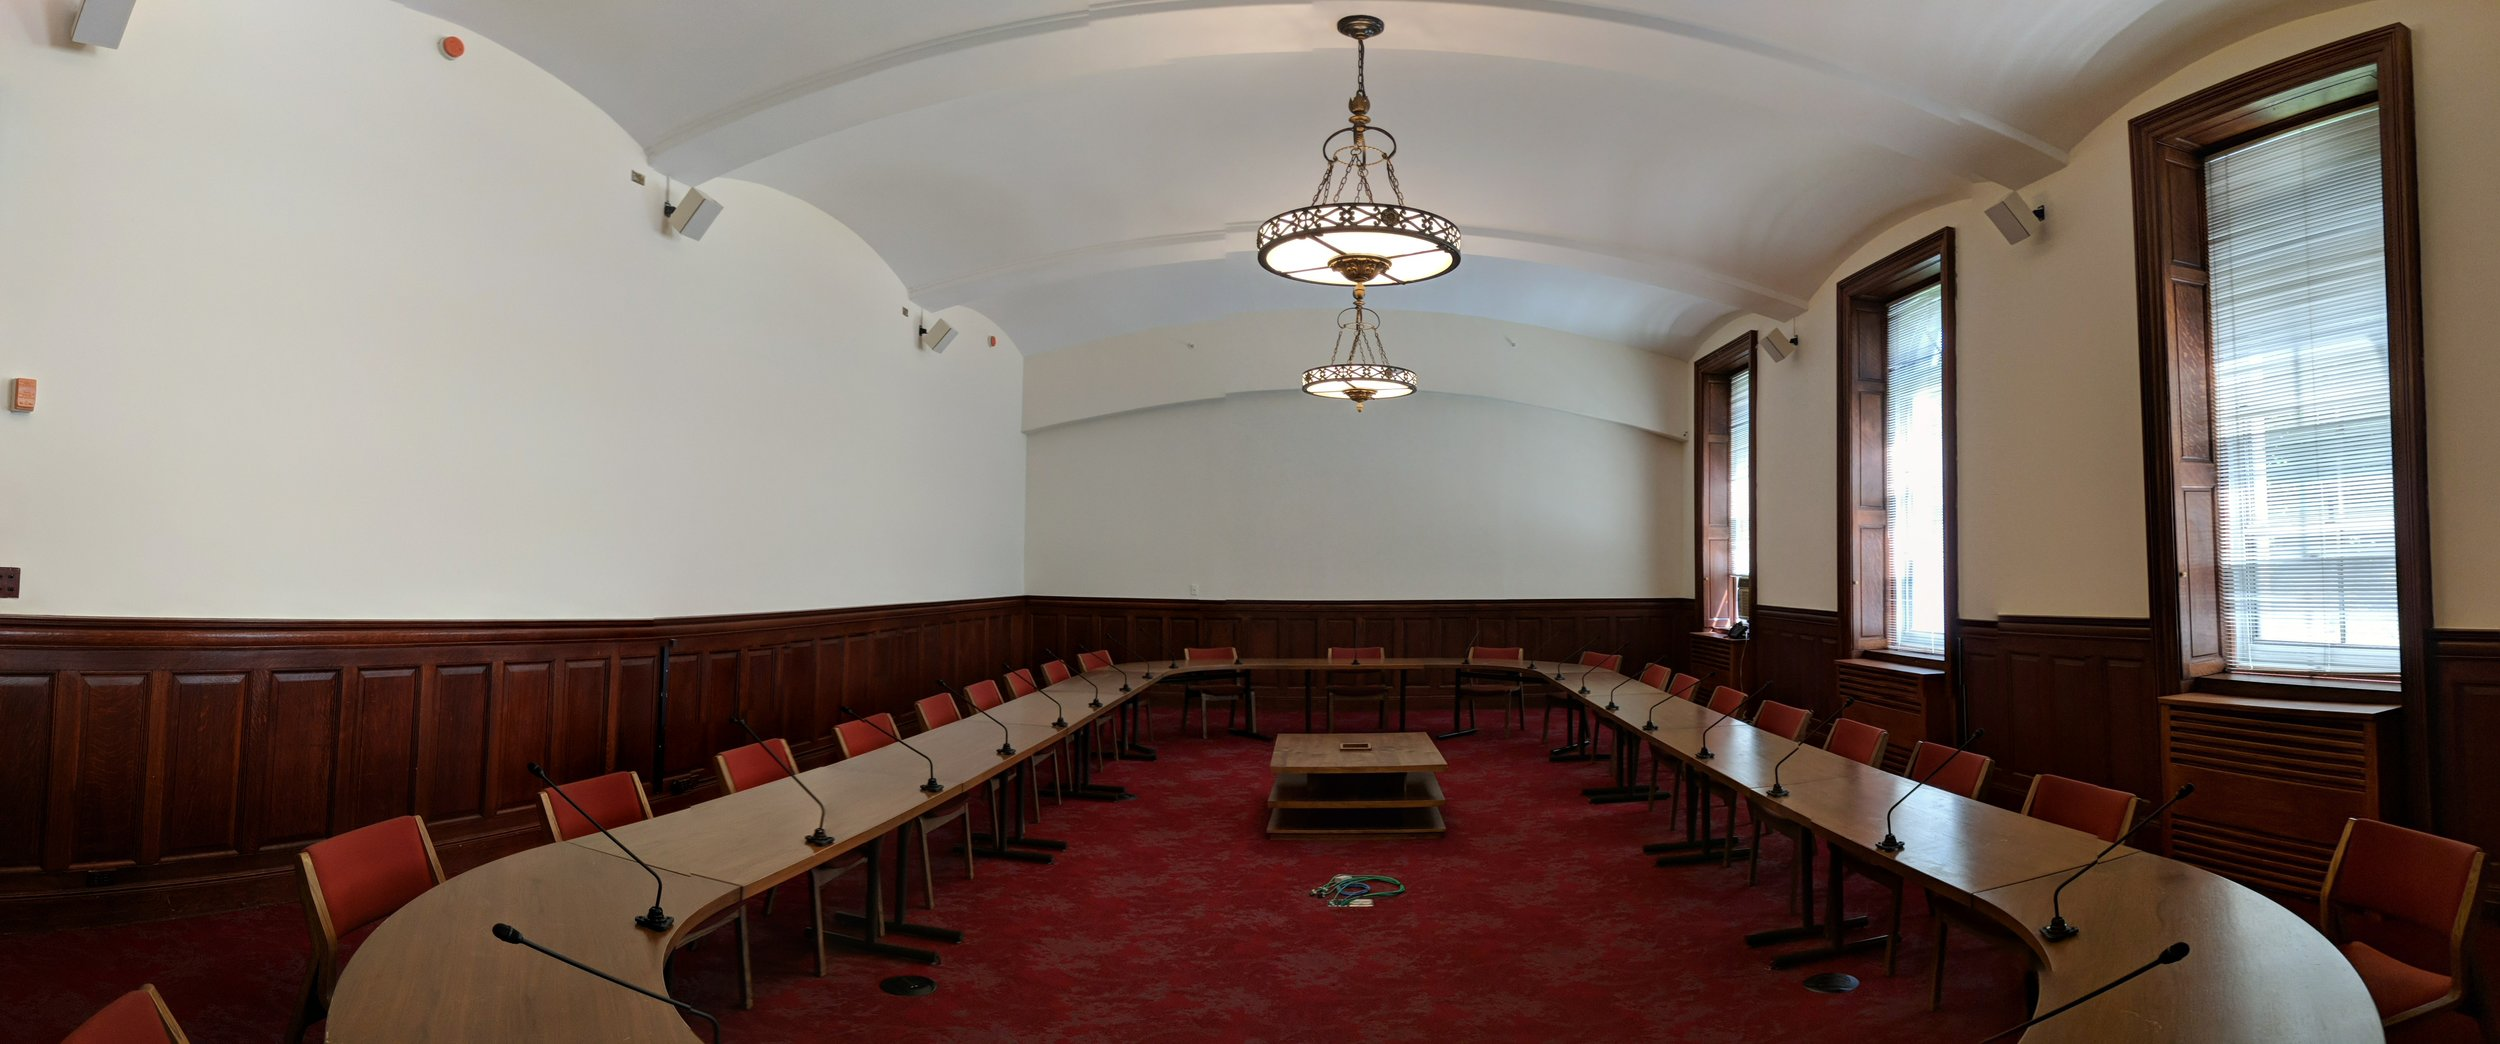 CAMM DT-200 speakers and Audio-Technica Engineered series microphones are used in the boardroom.